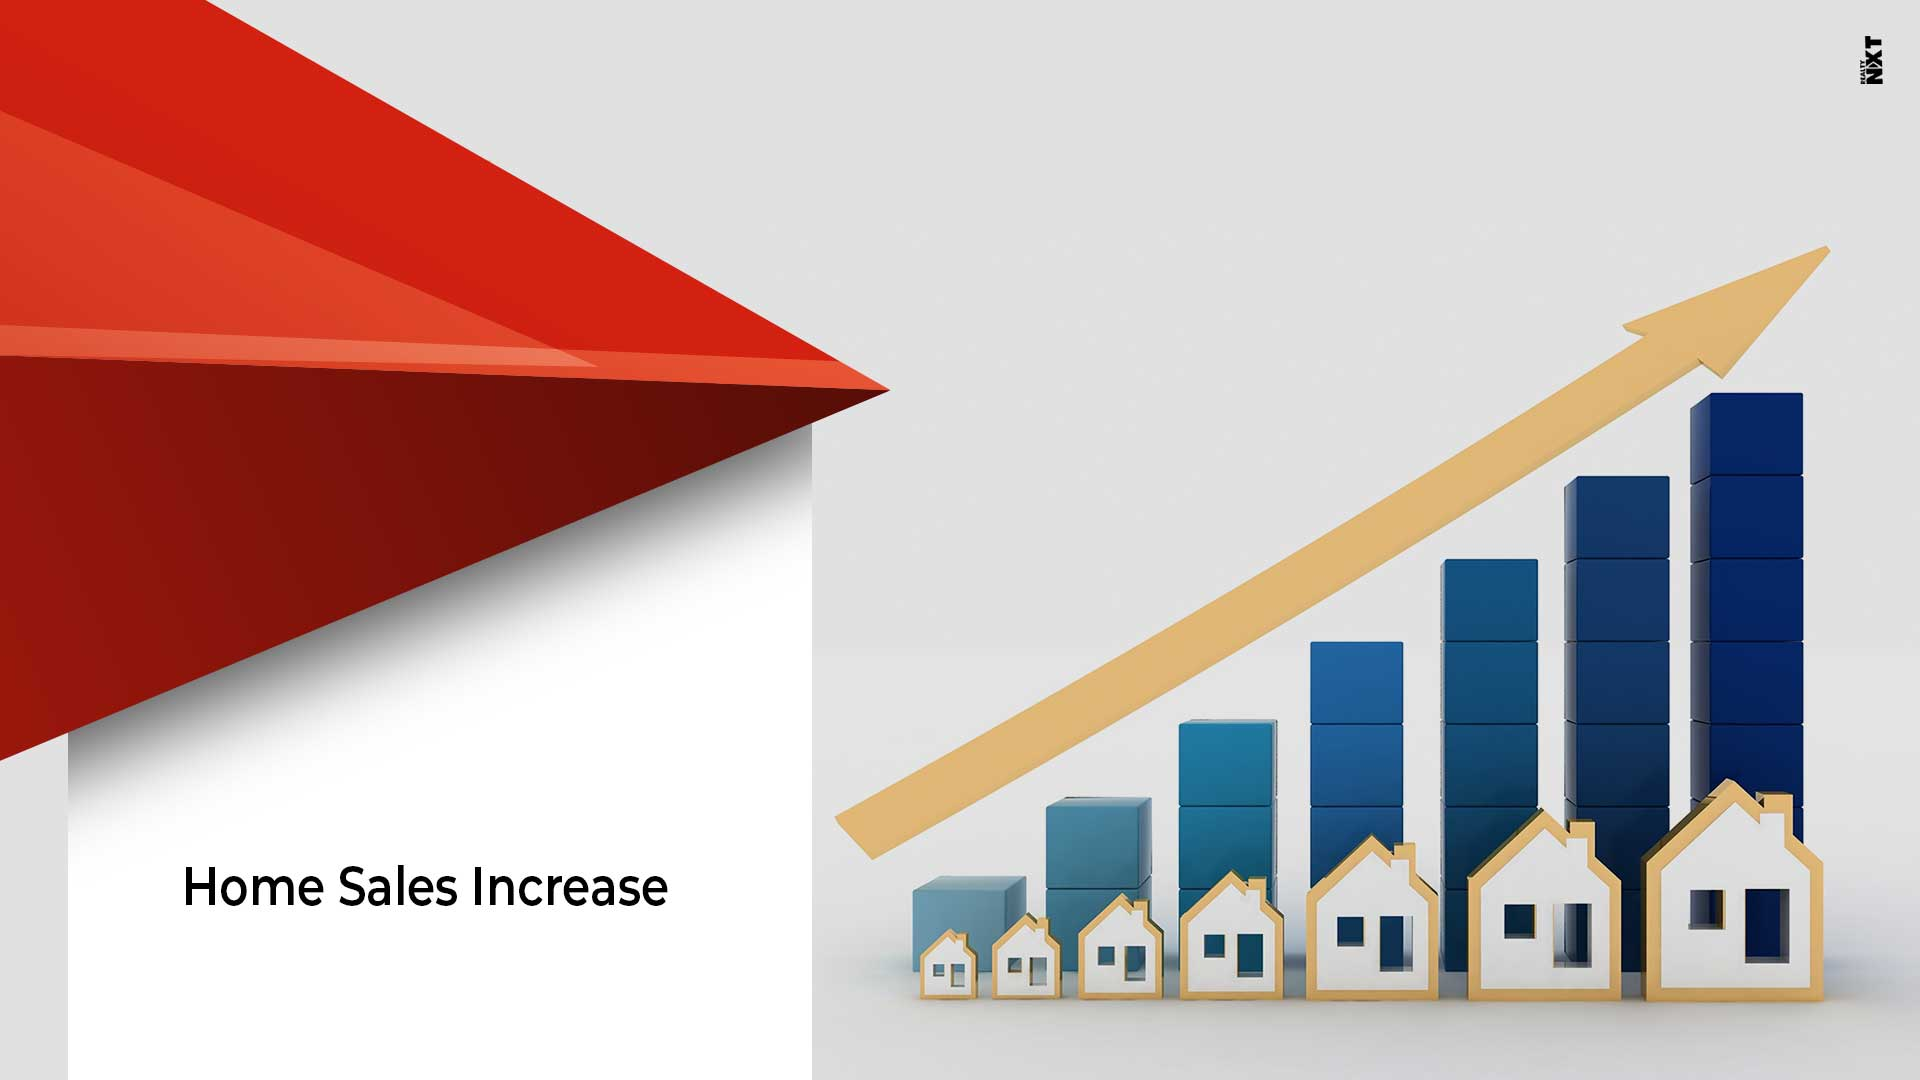 Decrease In Unsold Inventory As Homebuyers Flock To Buy Homes